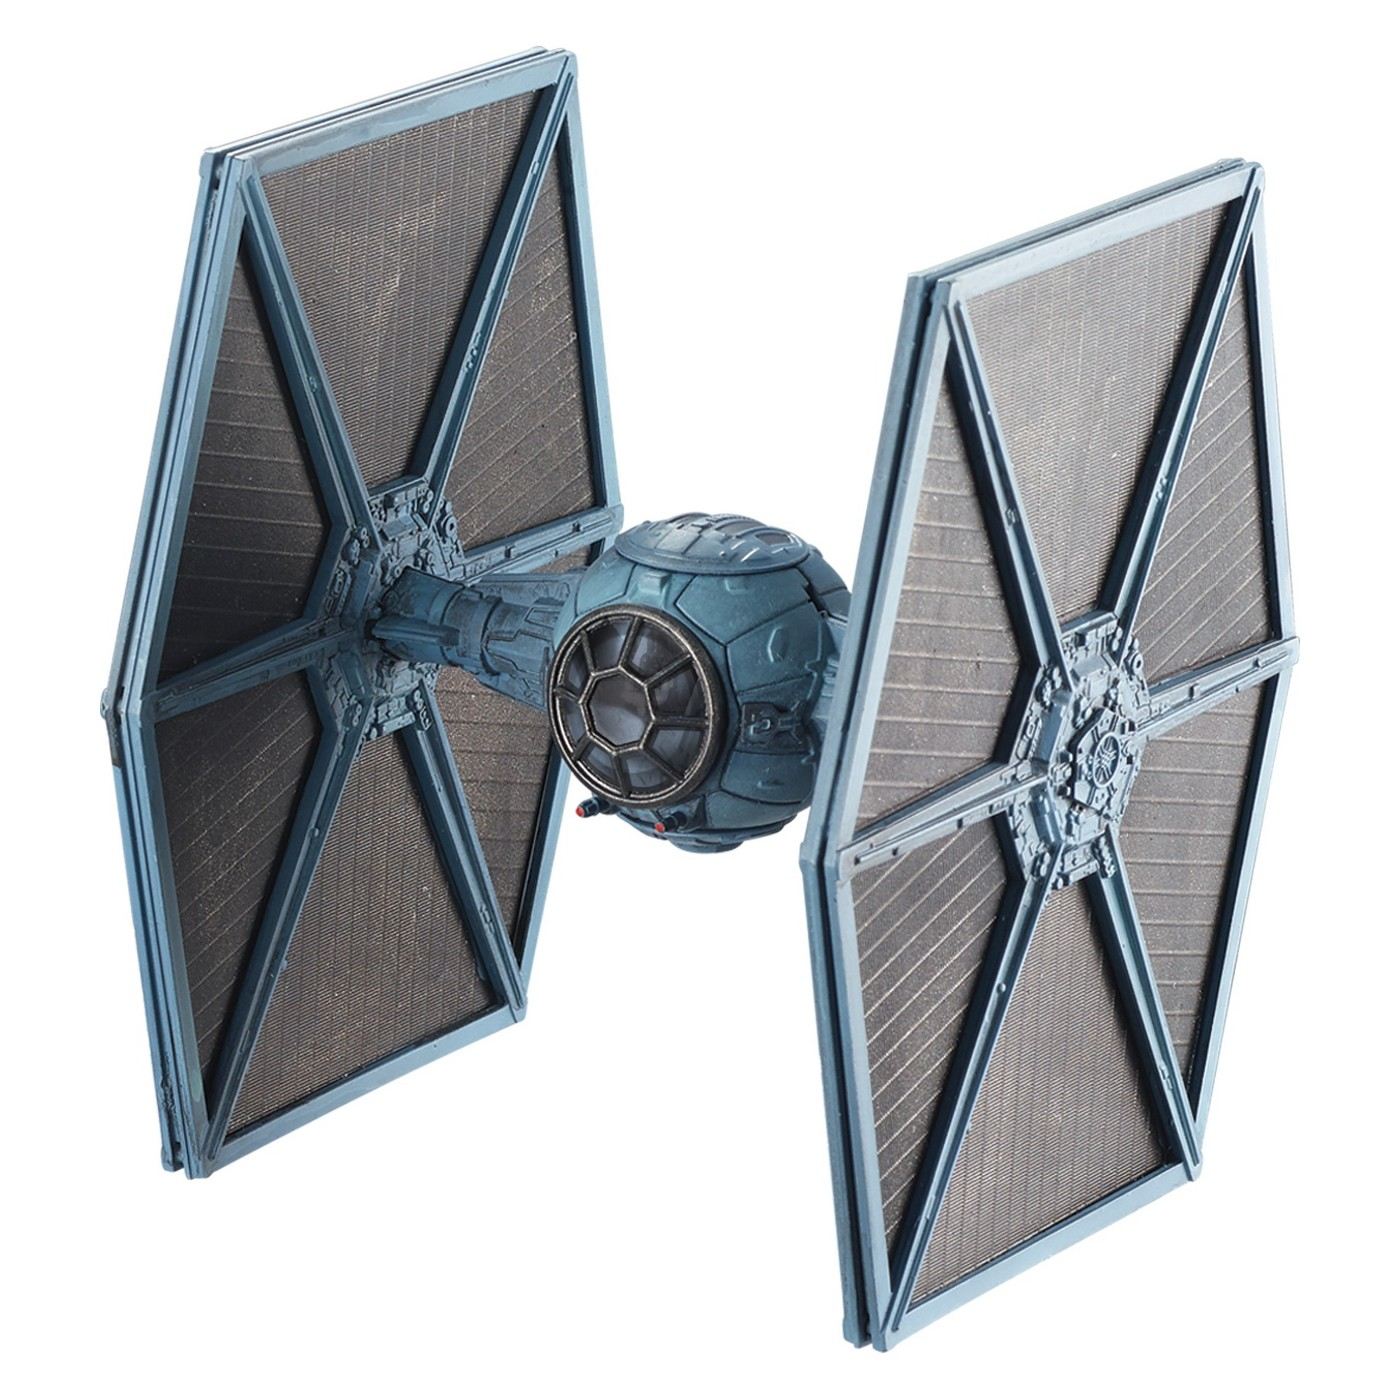 Elite TIE Fighter Star Wars Episode V: The Empire Strikes Back (1980) Diecast Model by Hotwheels